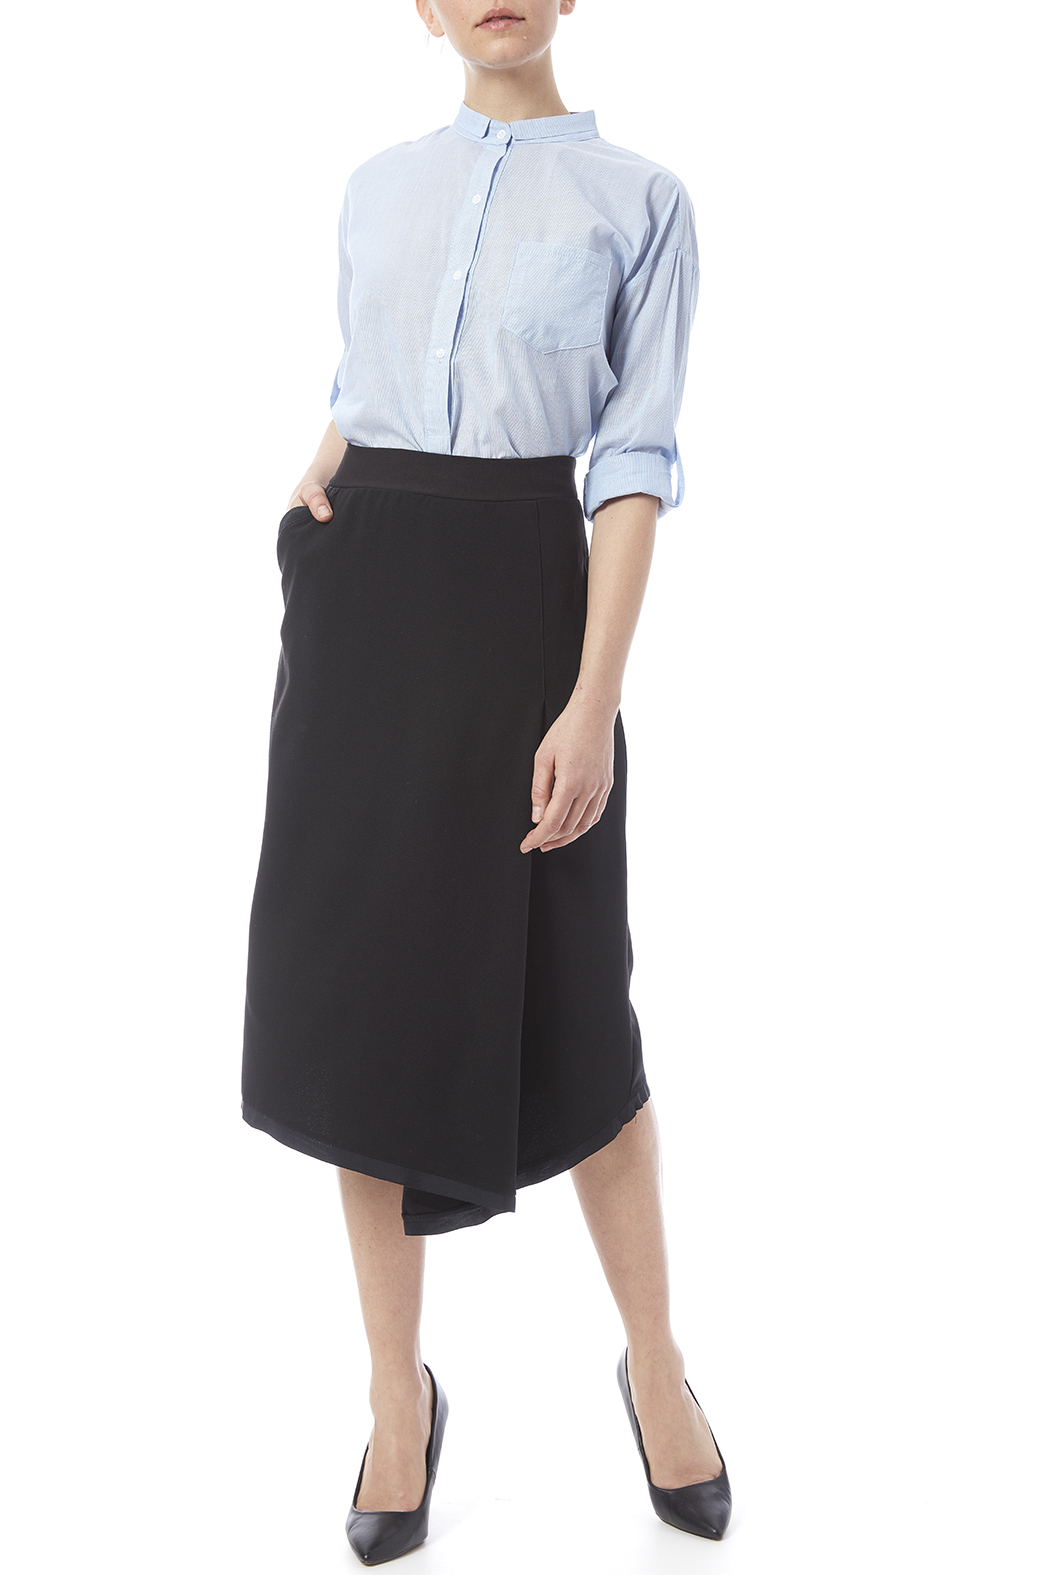 Neesh by D.A.R. Asymmetrical Midi Skirt - Front Full Image